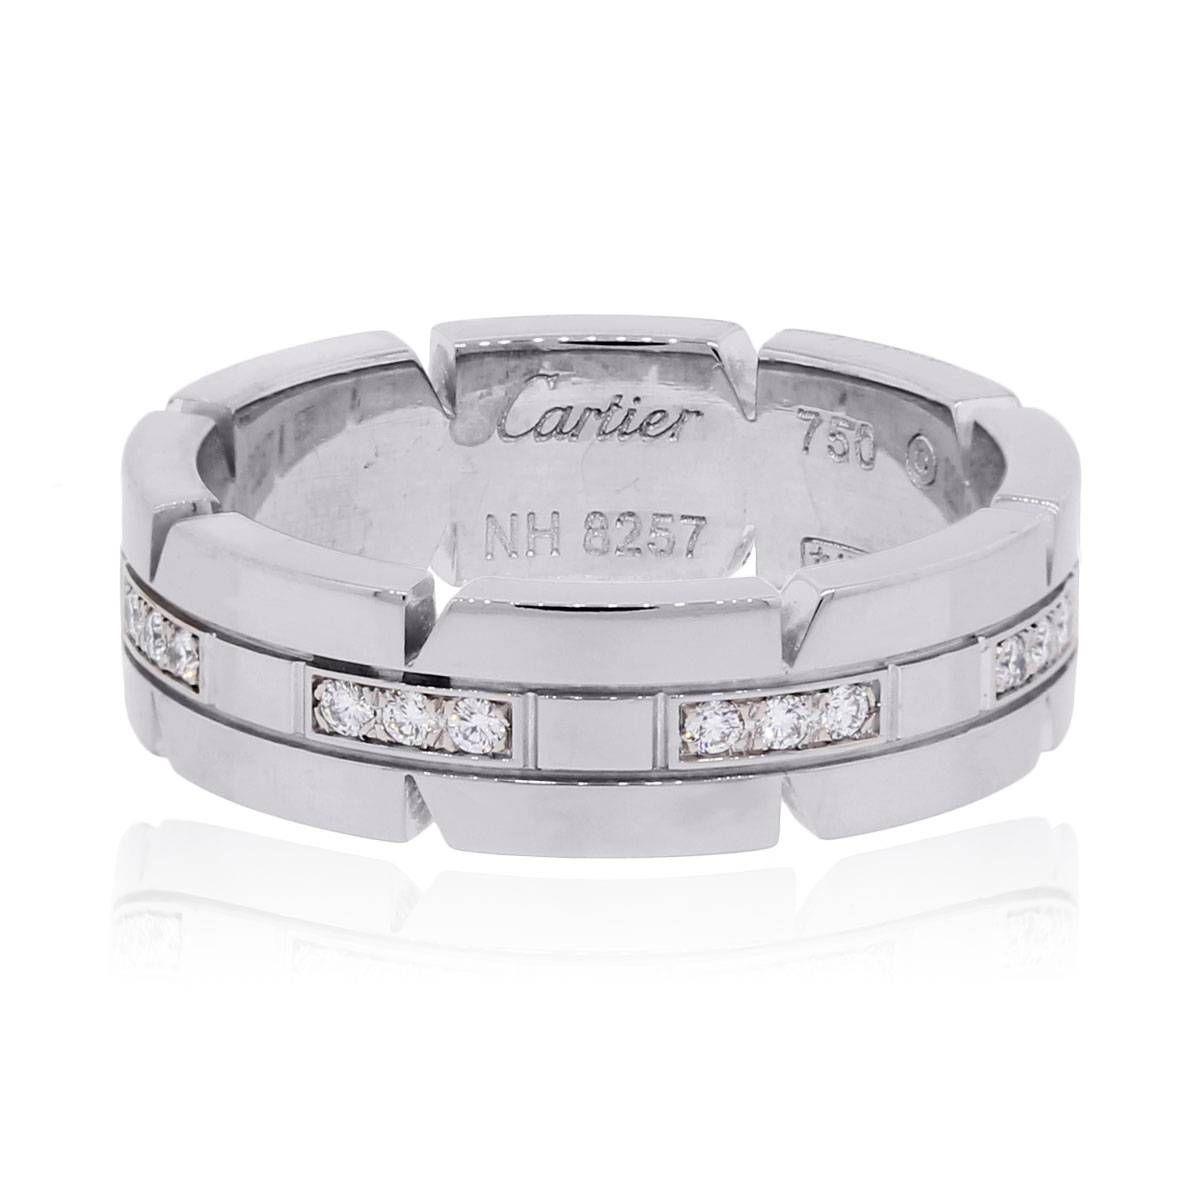 Cartier 18K Tank Francaise Diamond Wedding Band White Gold With Regard To Cartier White Gold Wedding Bands (View 2 of 15)